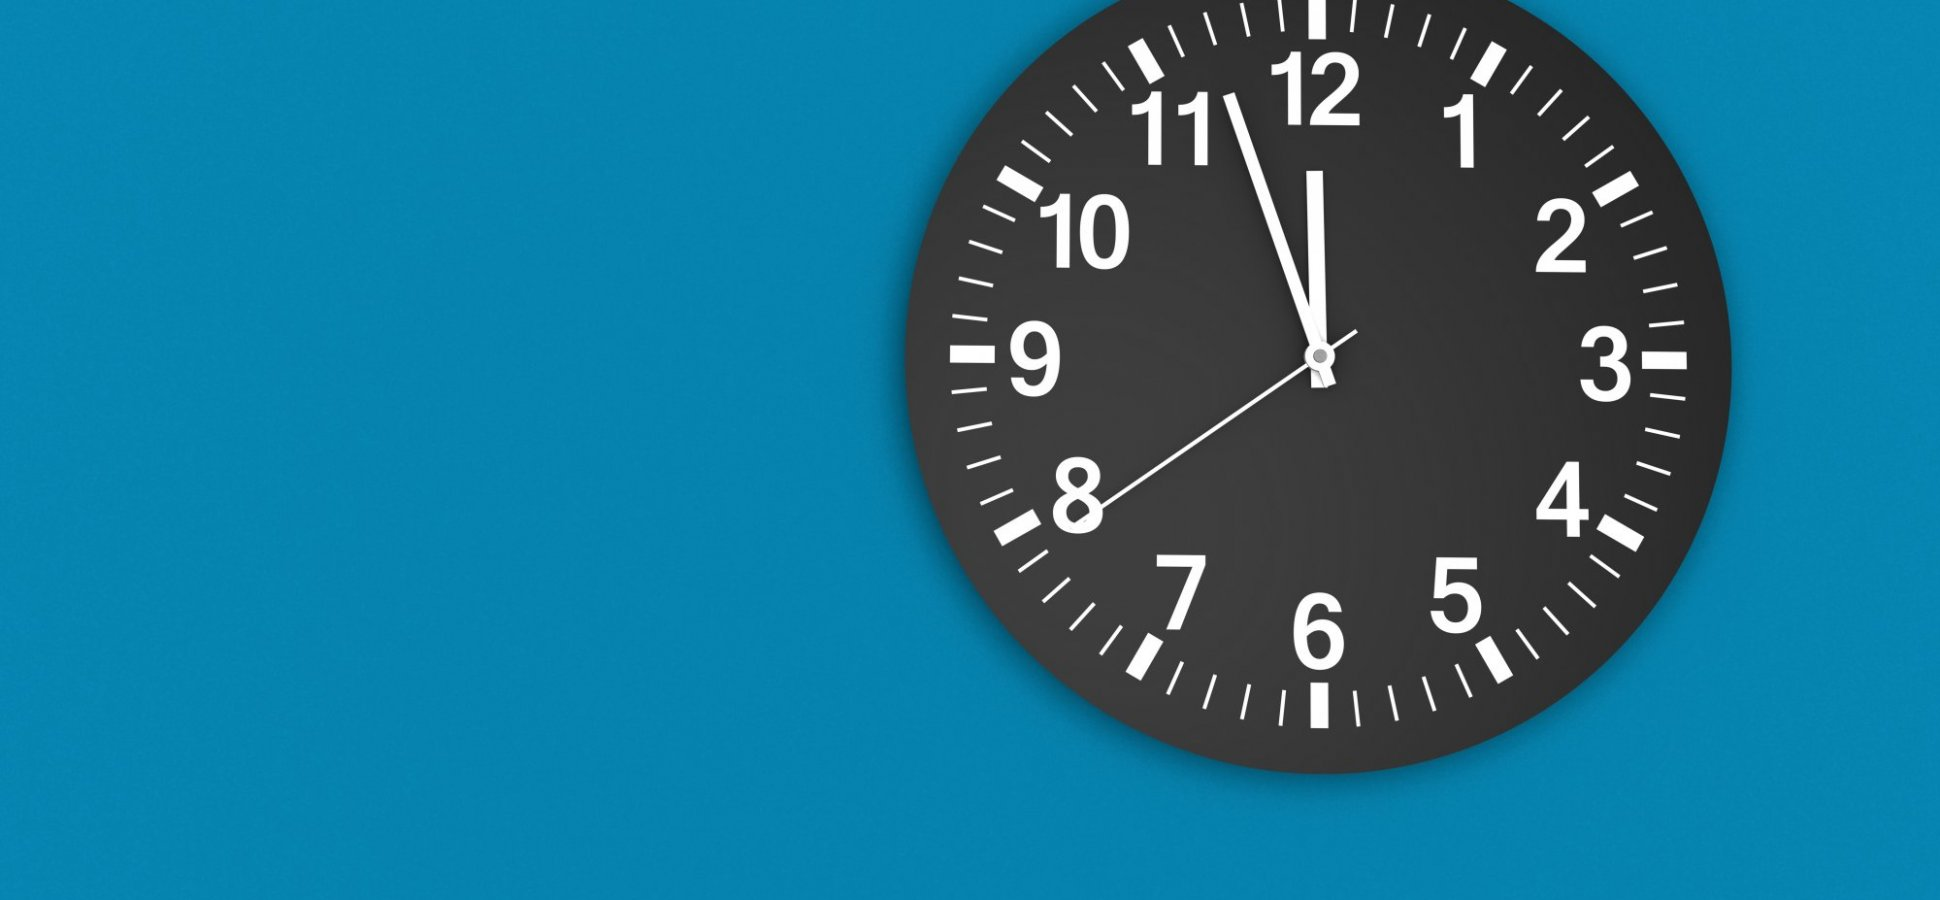 Making This 1 Brilliant Tweak to Workers' Schedules Skyrocketed Their Productivity